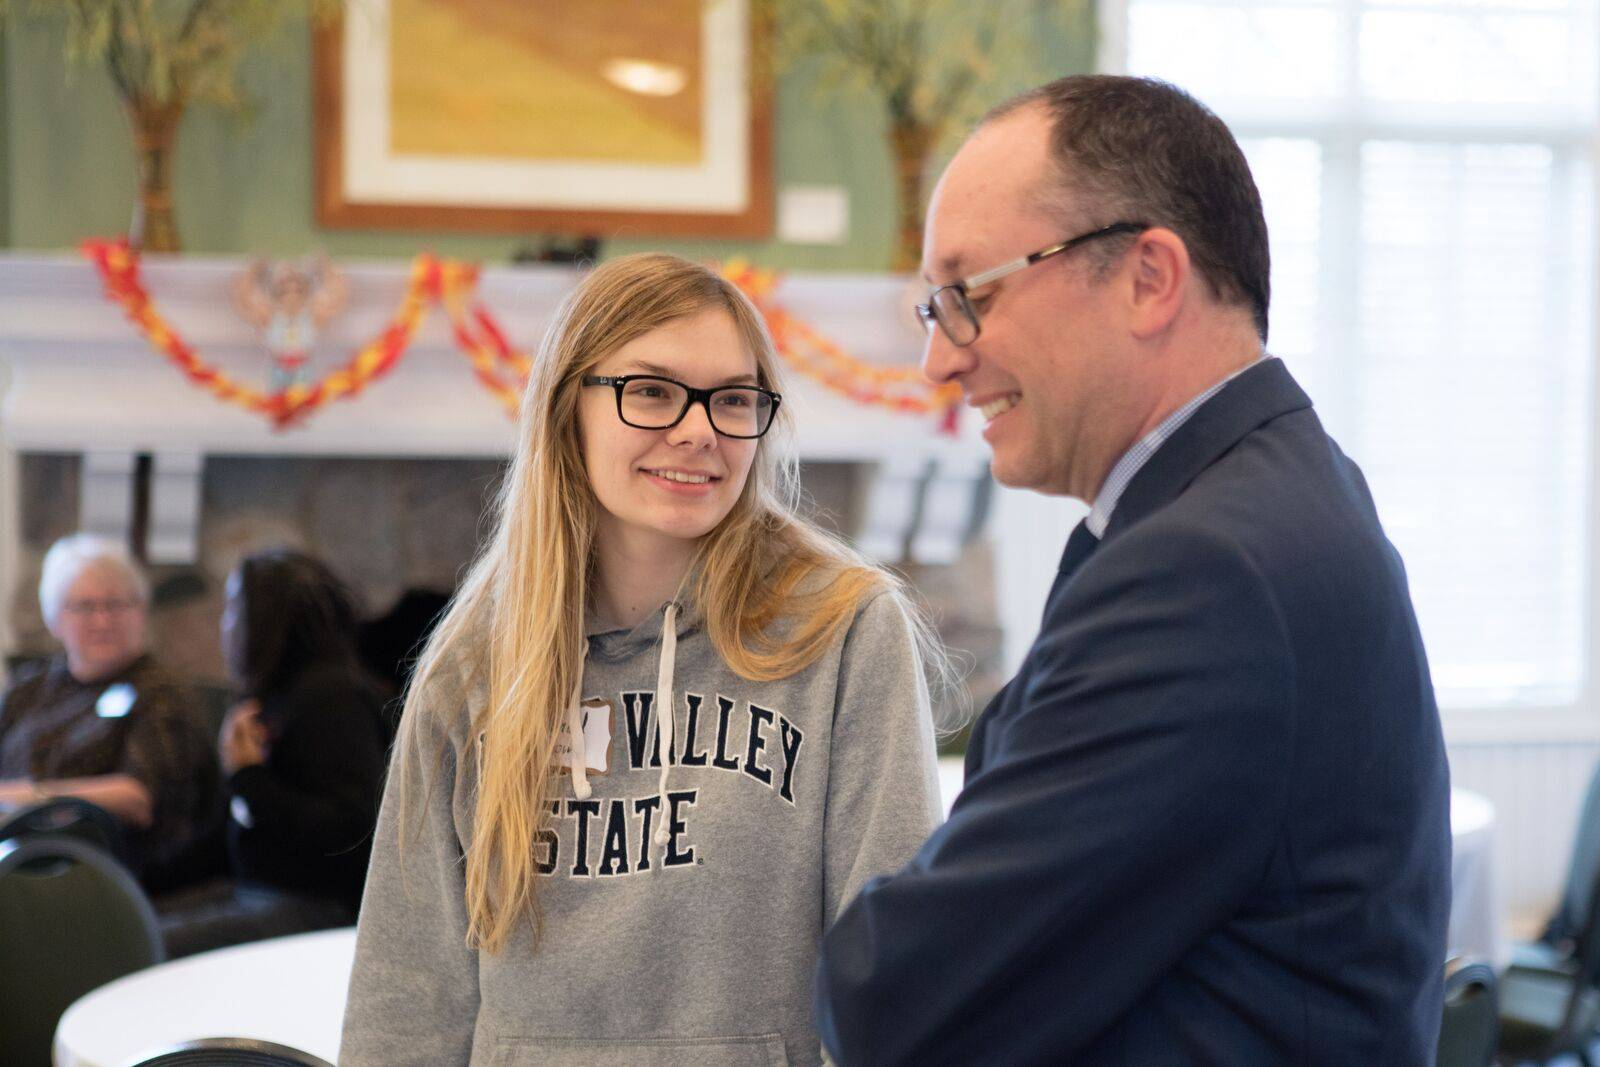 Mike Messner speaking with a female Grand Valley State University student